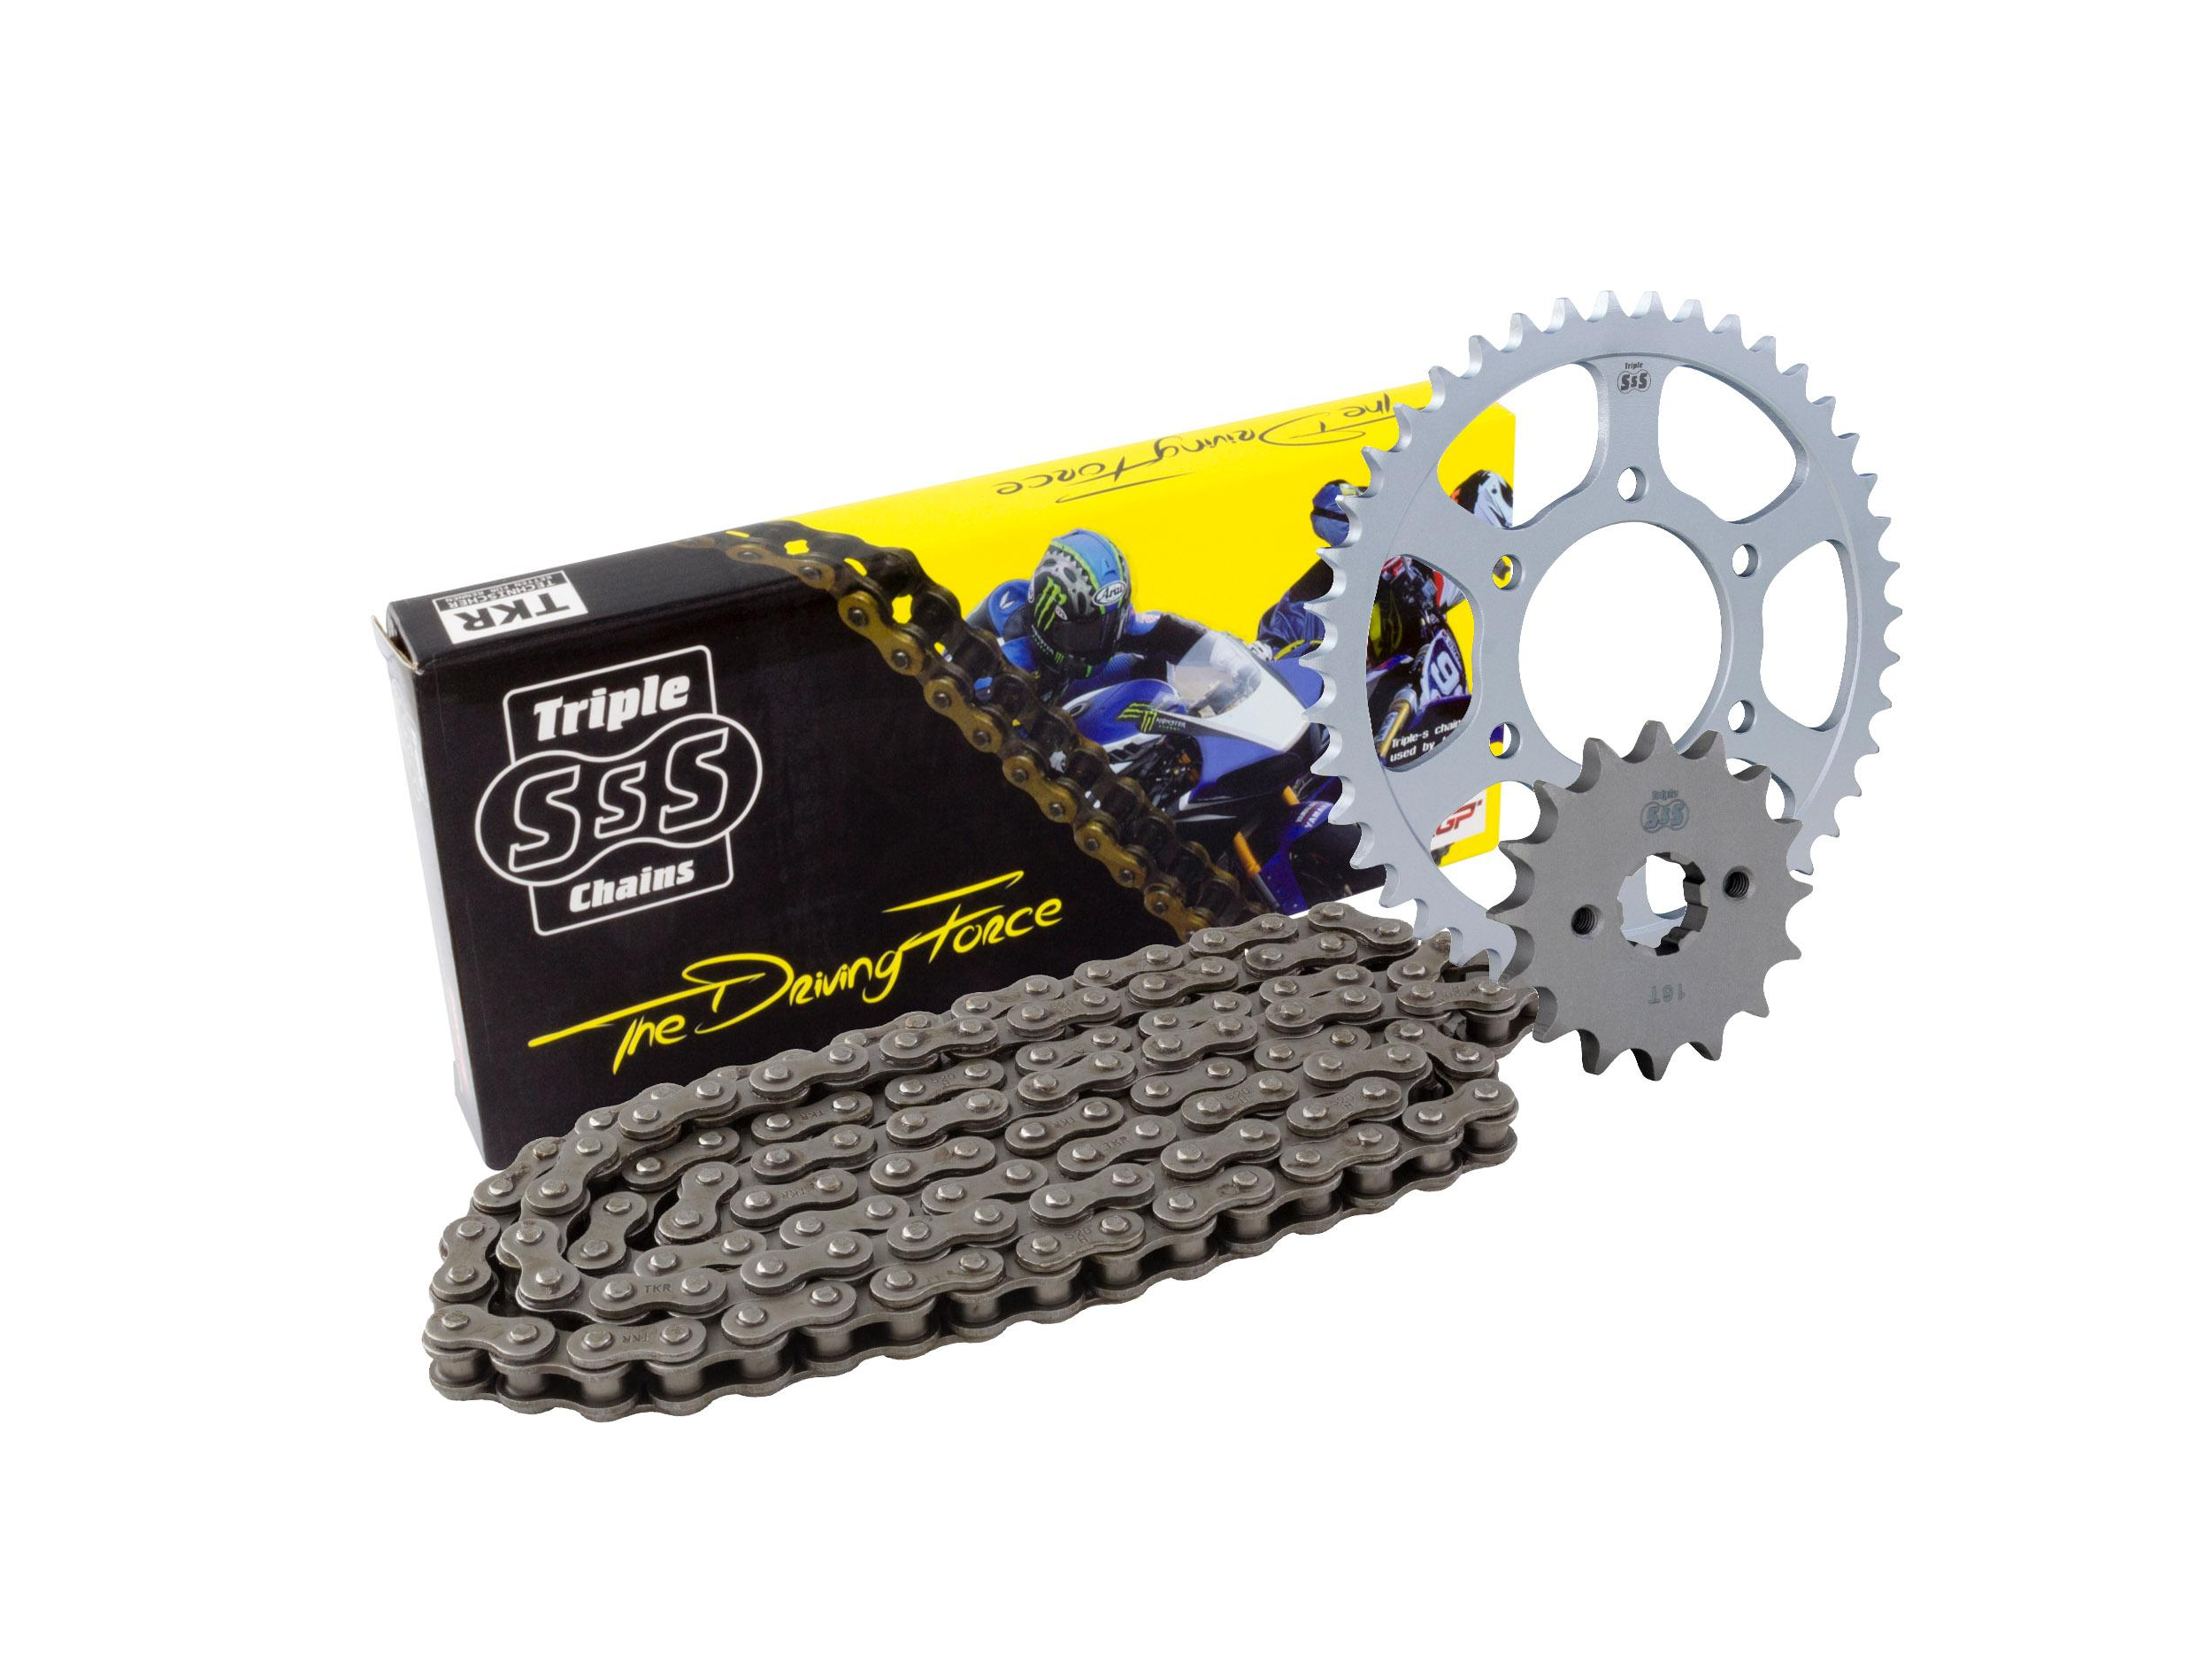 Rieju 50 Naked 04-09 Chain & Sprocket Kit: 11T Front, 50T Rear, STD Chain 420H 126 Link